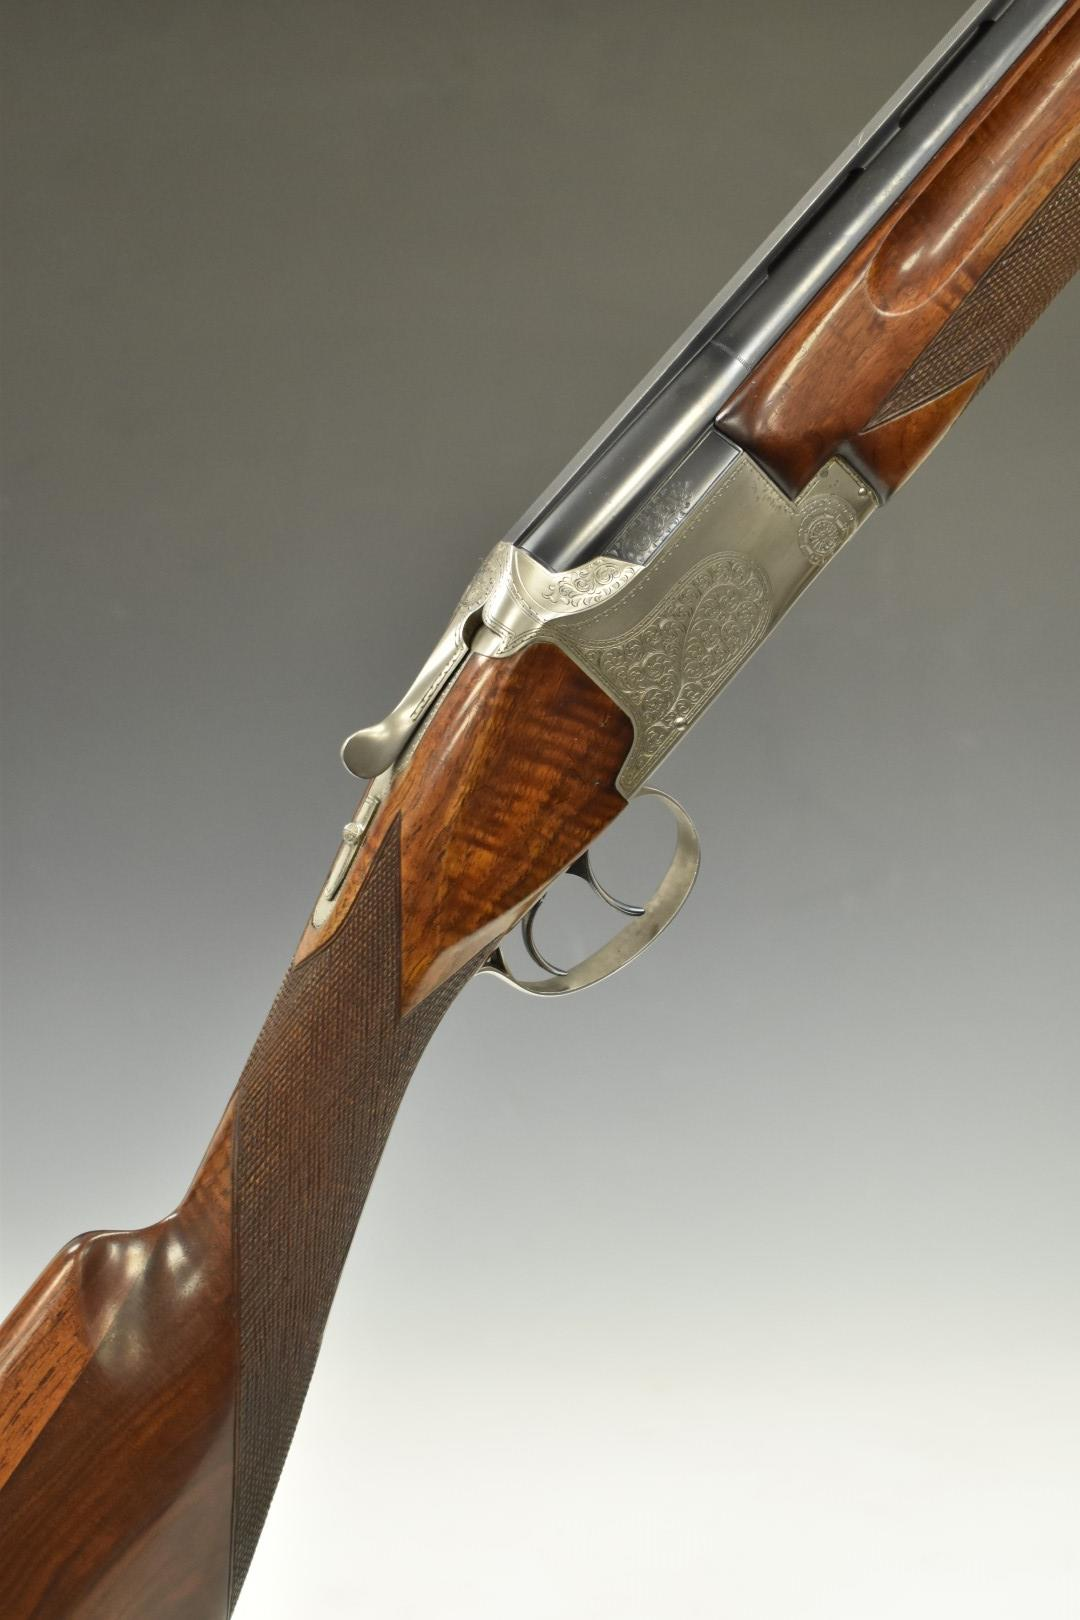 Winchester Super Grade 12 bore over and under ejector shotgun with engraved locks, trigger guard,